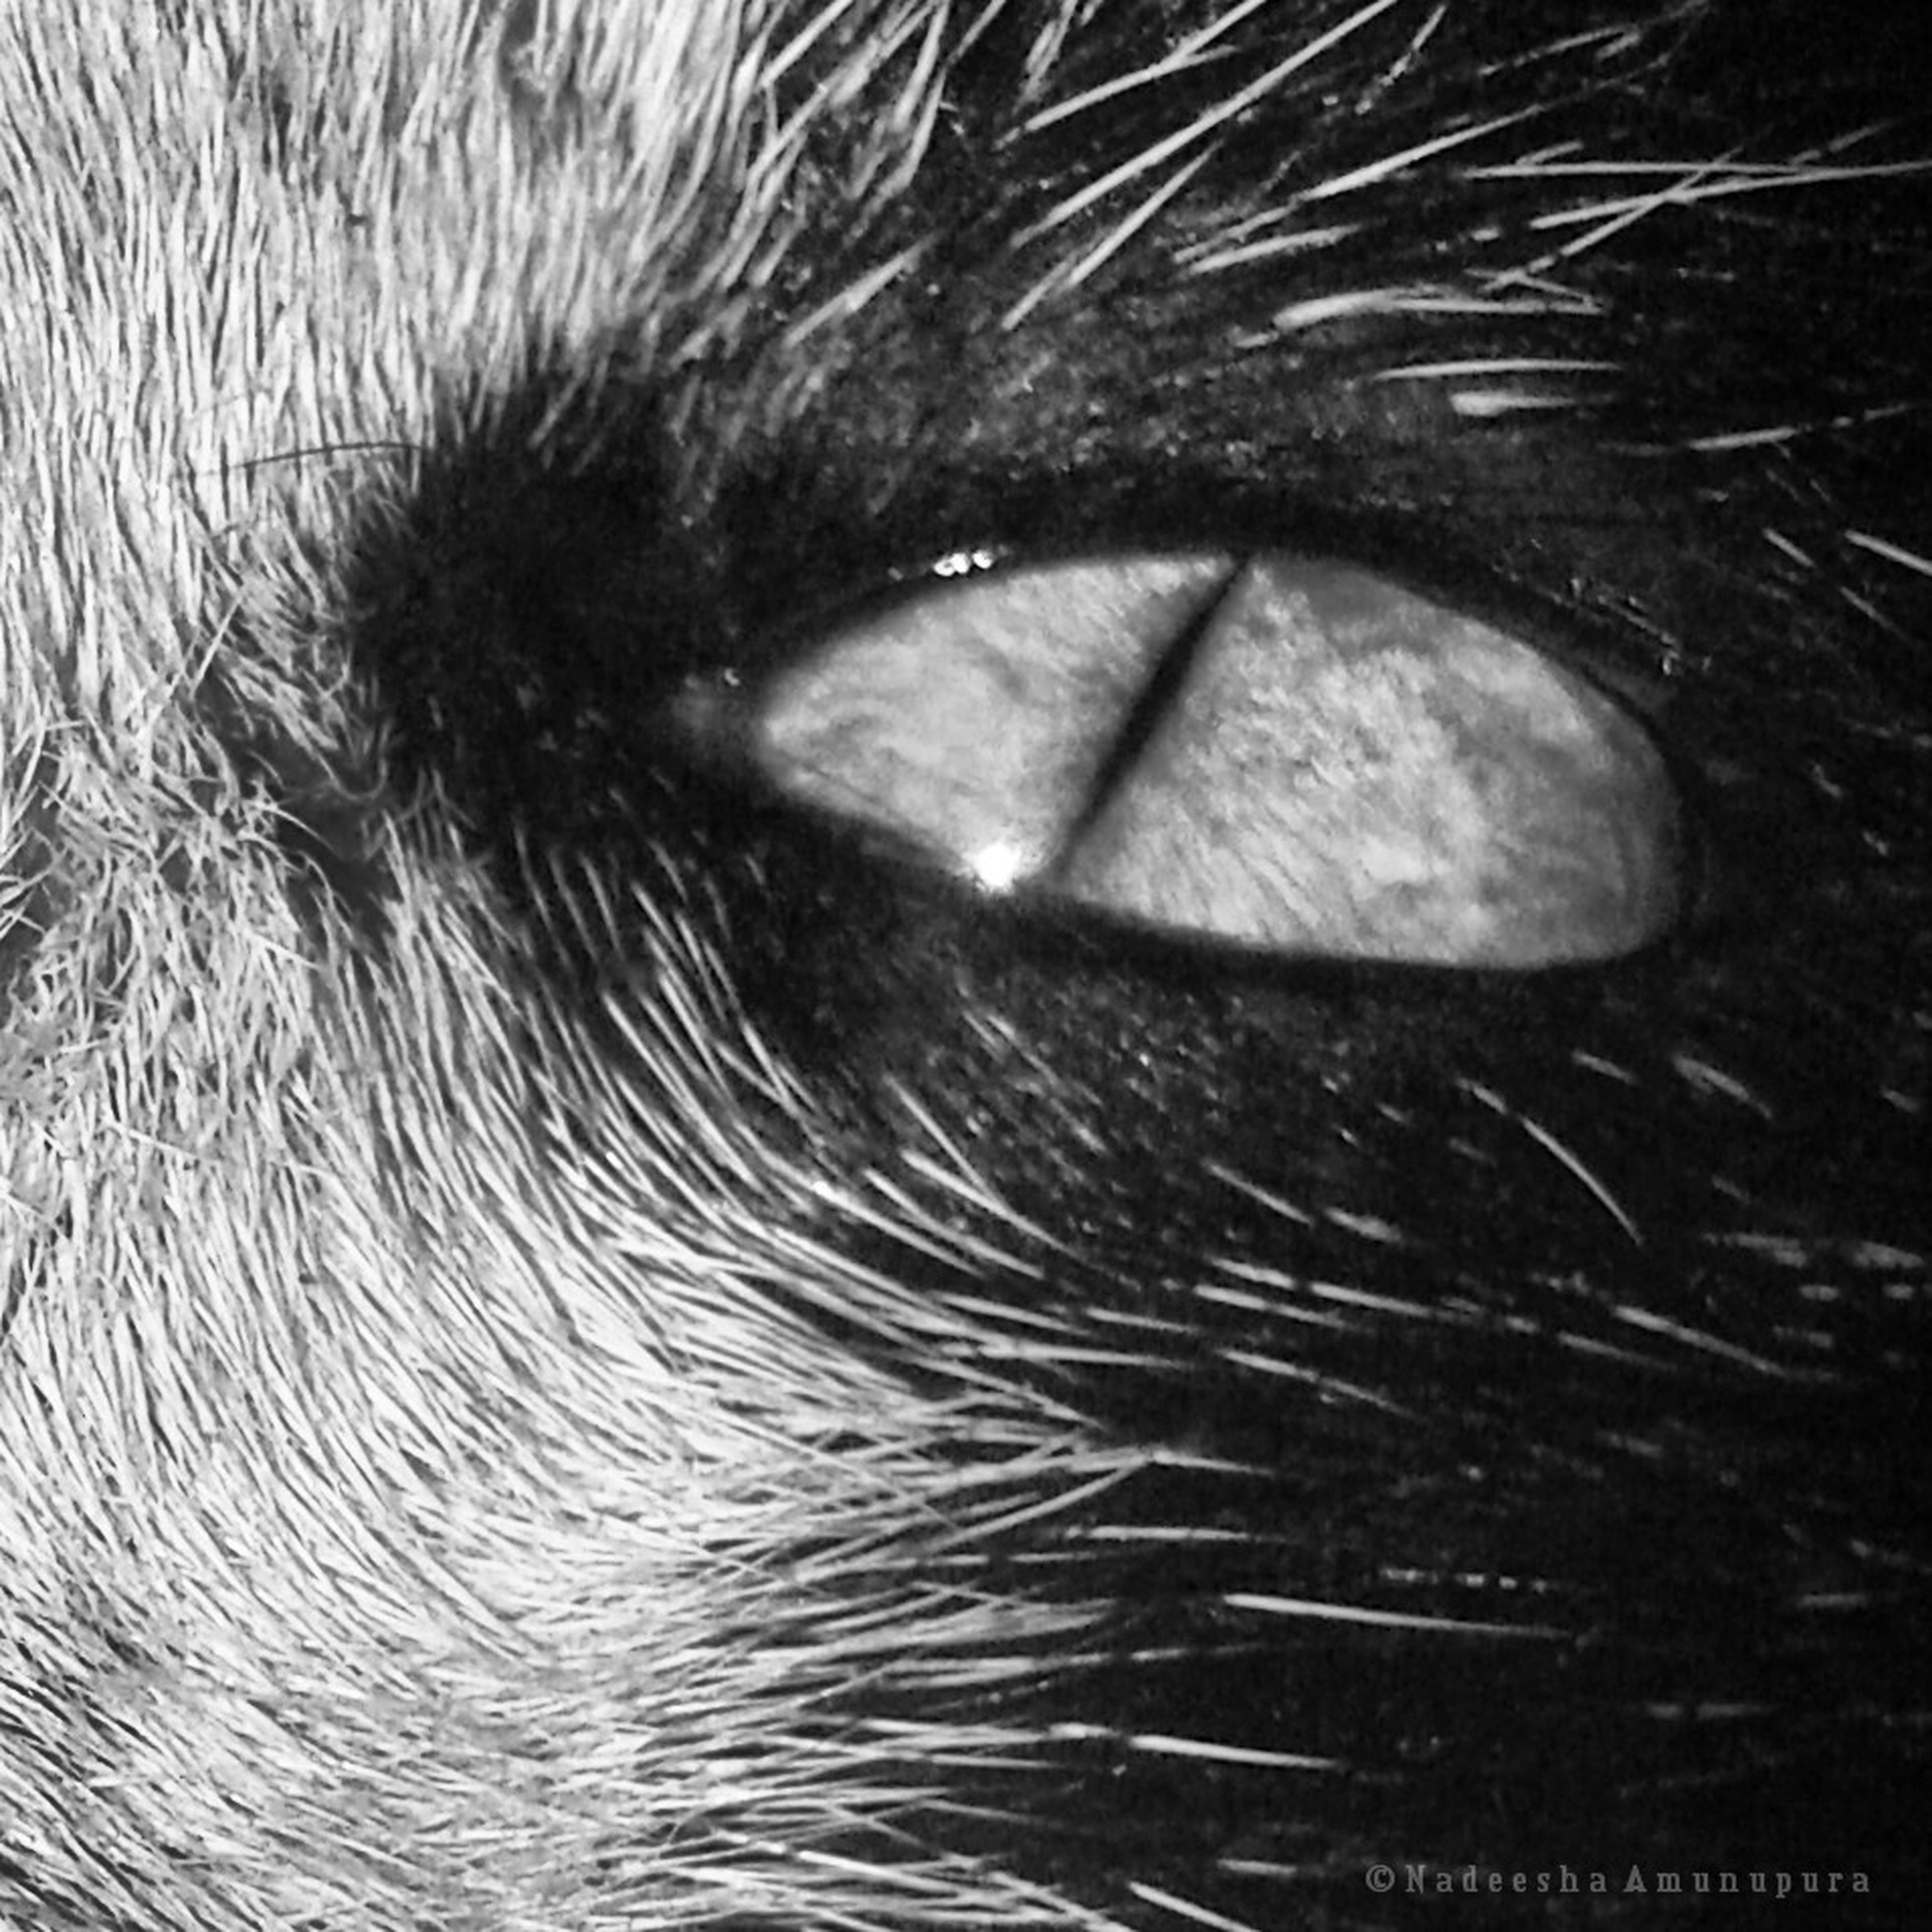 close-up, part of, no people, night, water, reflection, one animal, outdoors, motion, detail, nature, long exposure, animal body part, animal head, selective focus, pets, black background, grass, blurred motion, studio shot